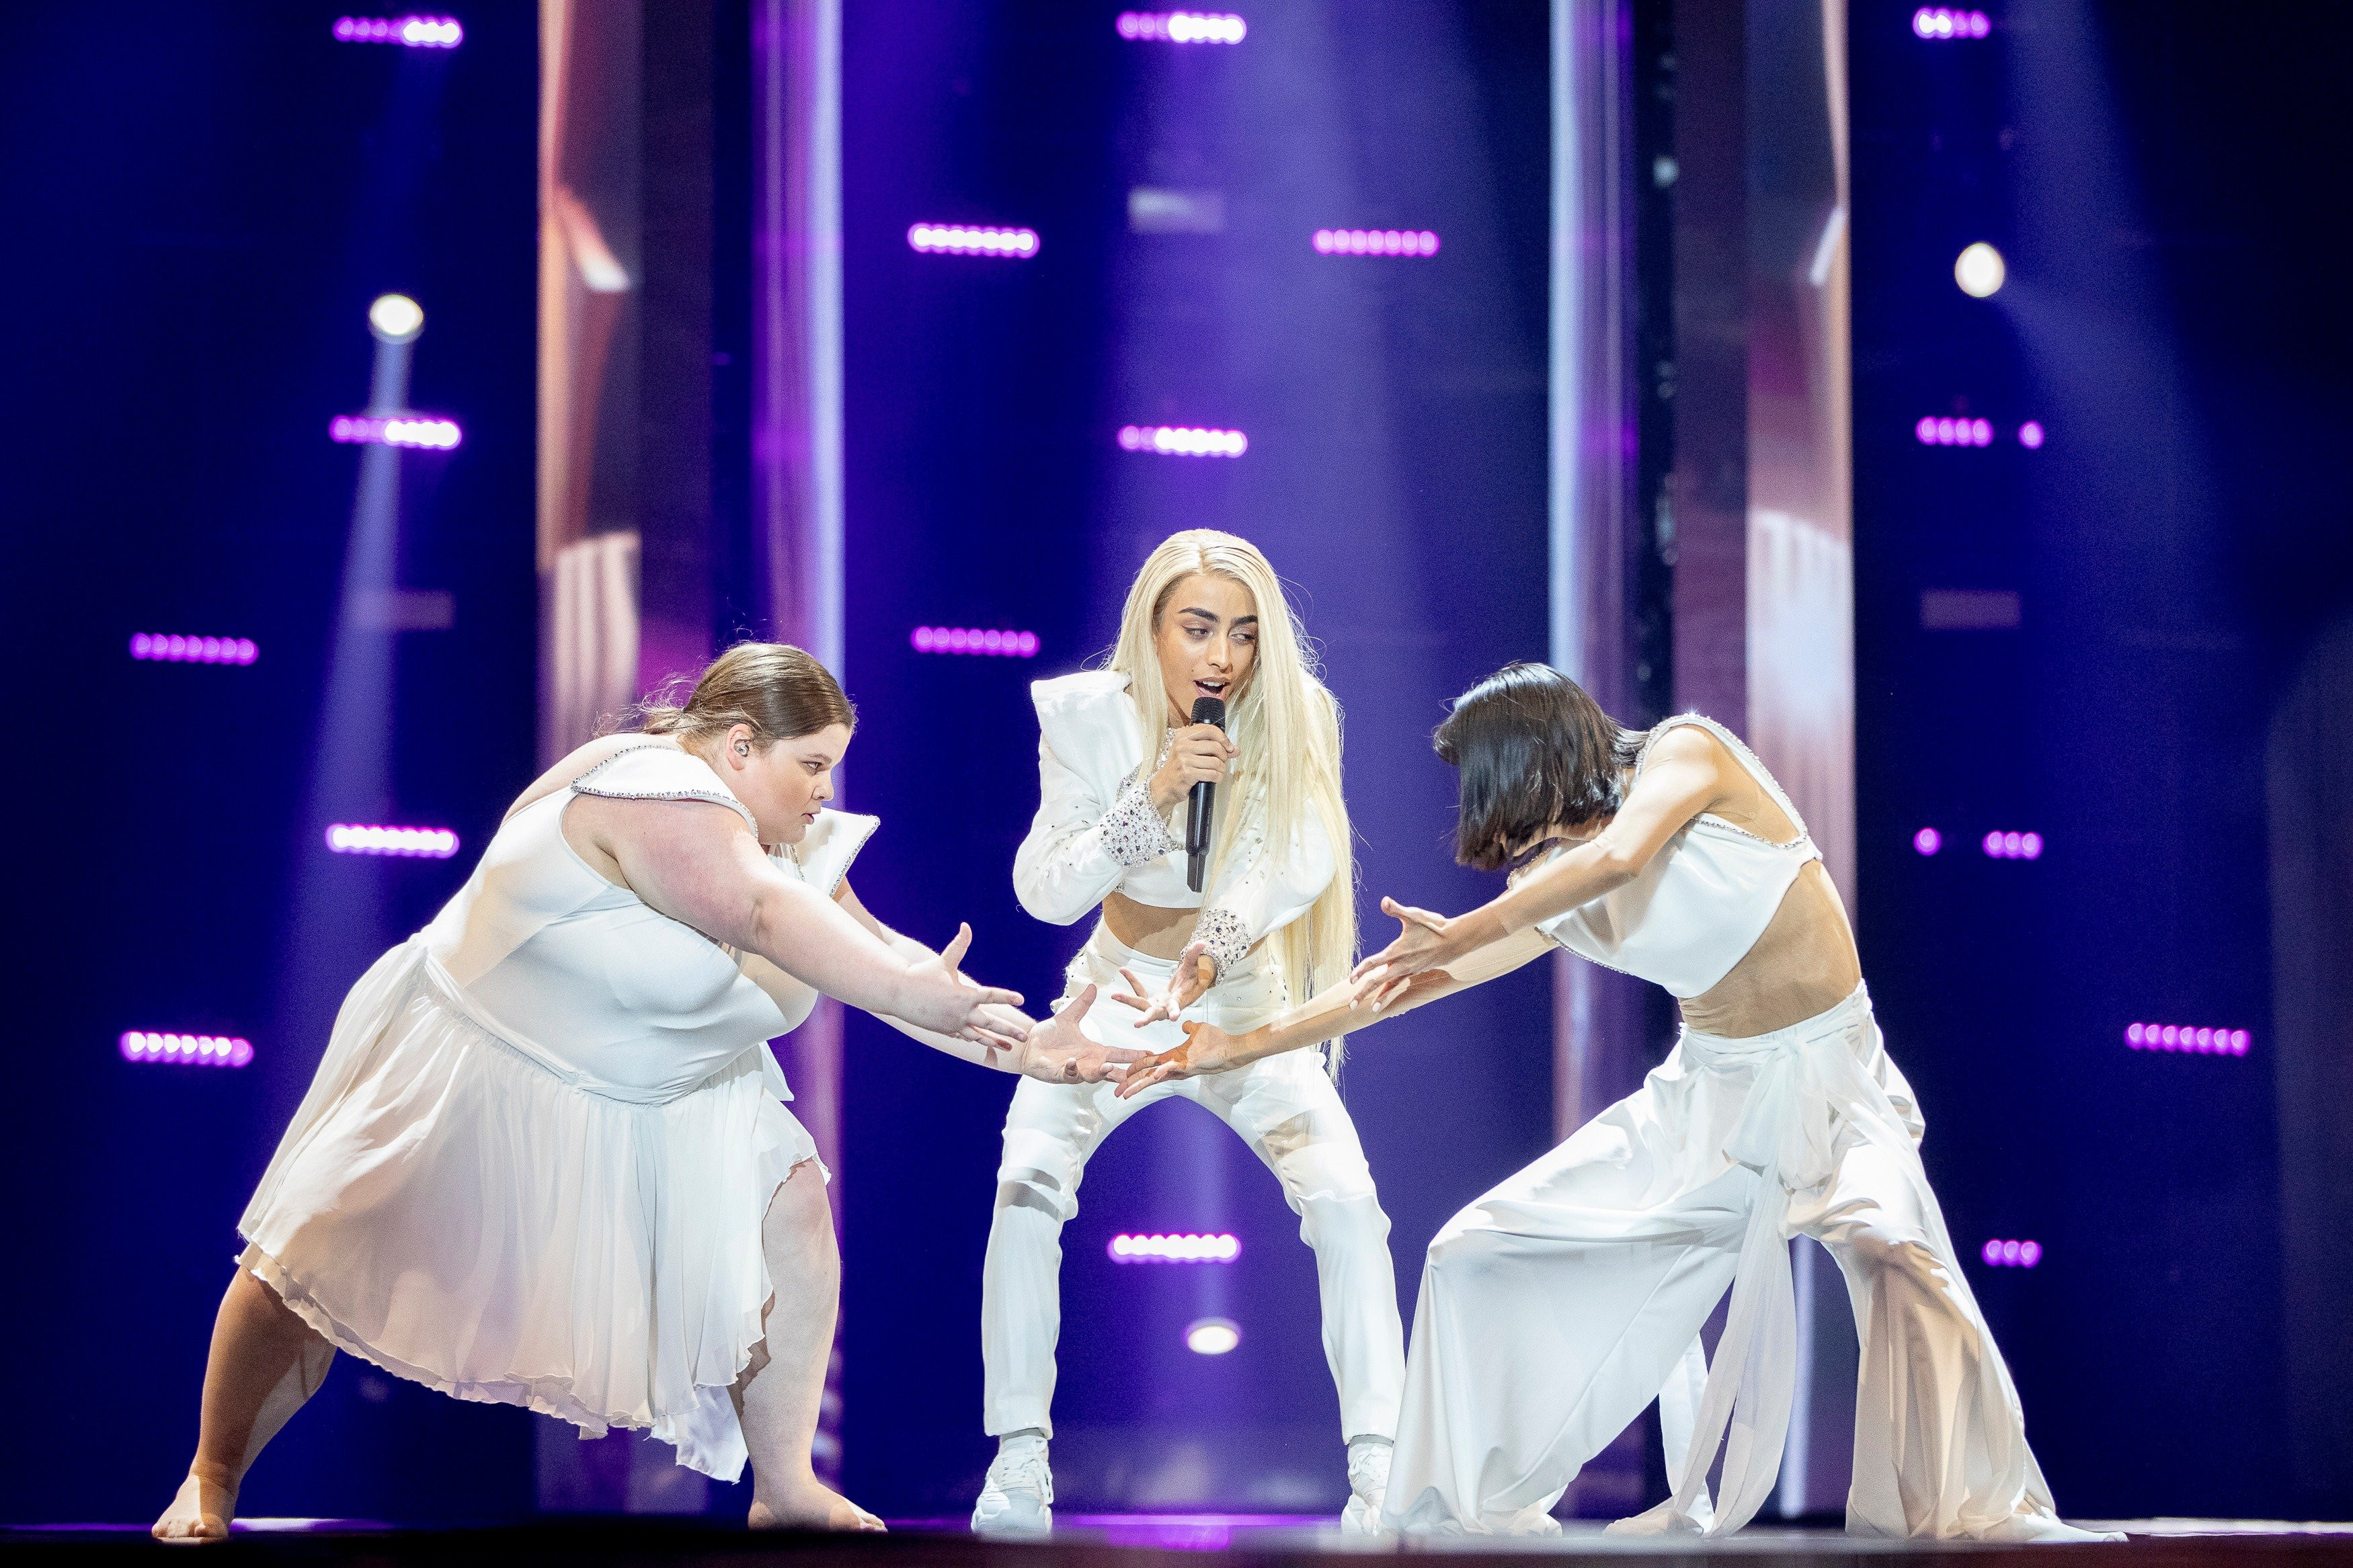 France: France 2 goes internal for Eurovision 2020